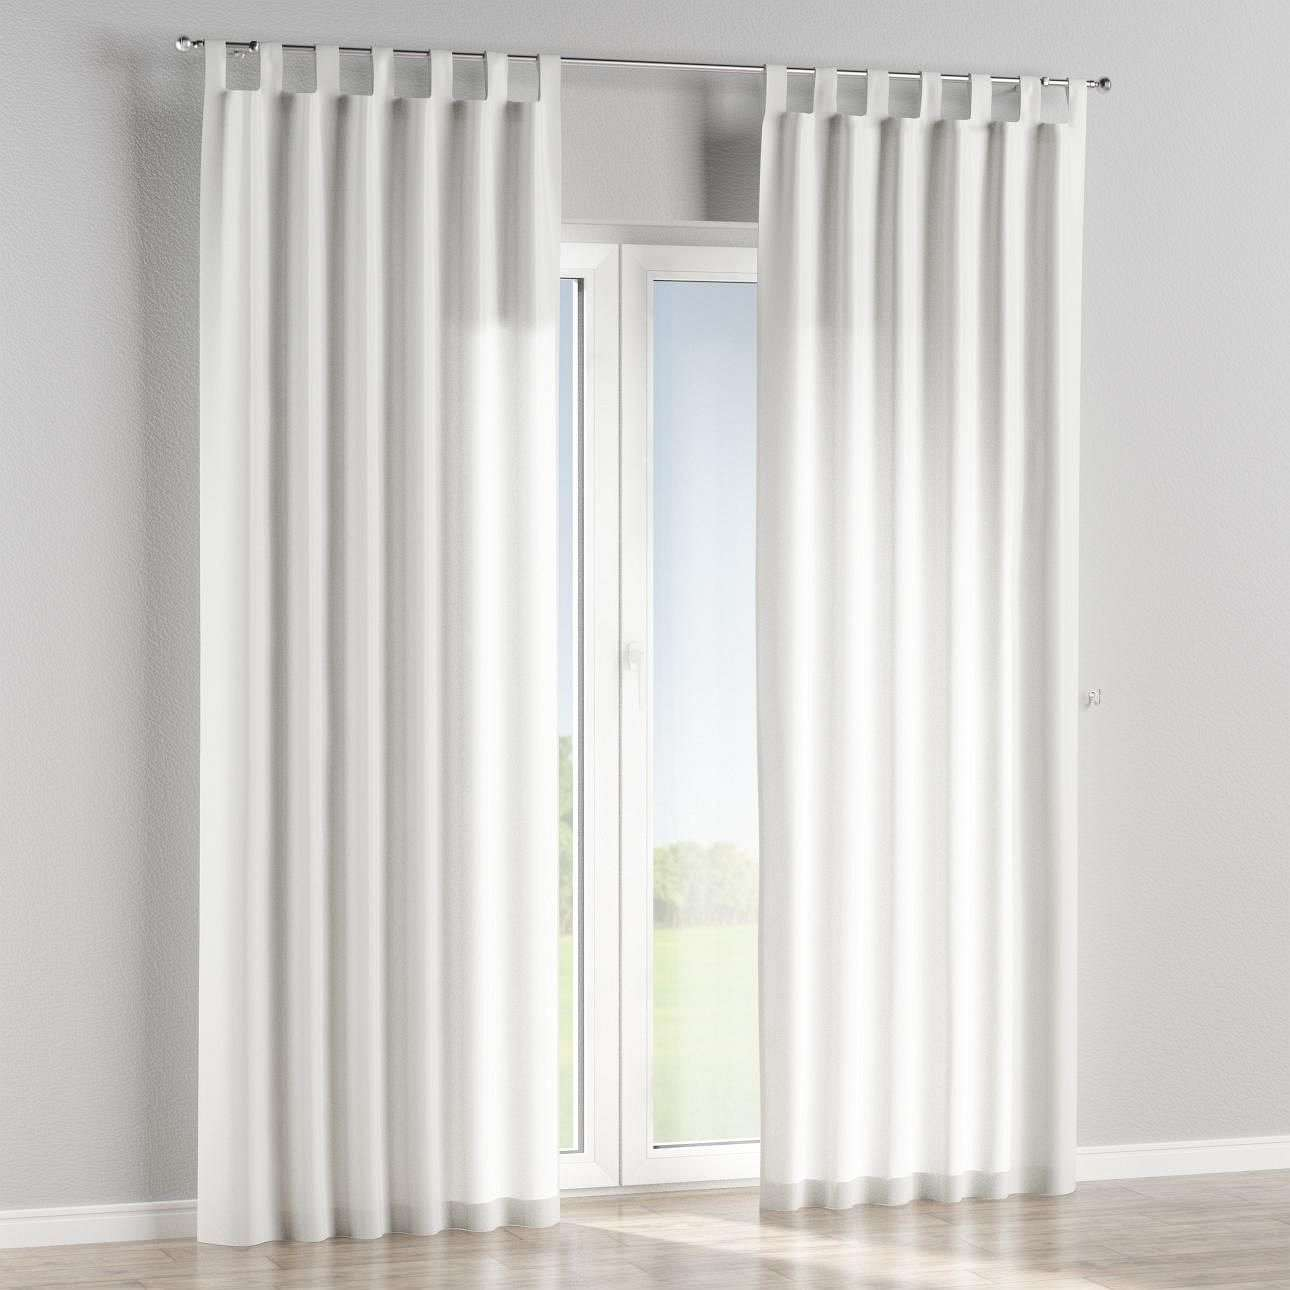 Tab top curtains in collection Fleur , fabric: 139-93